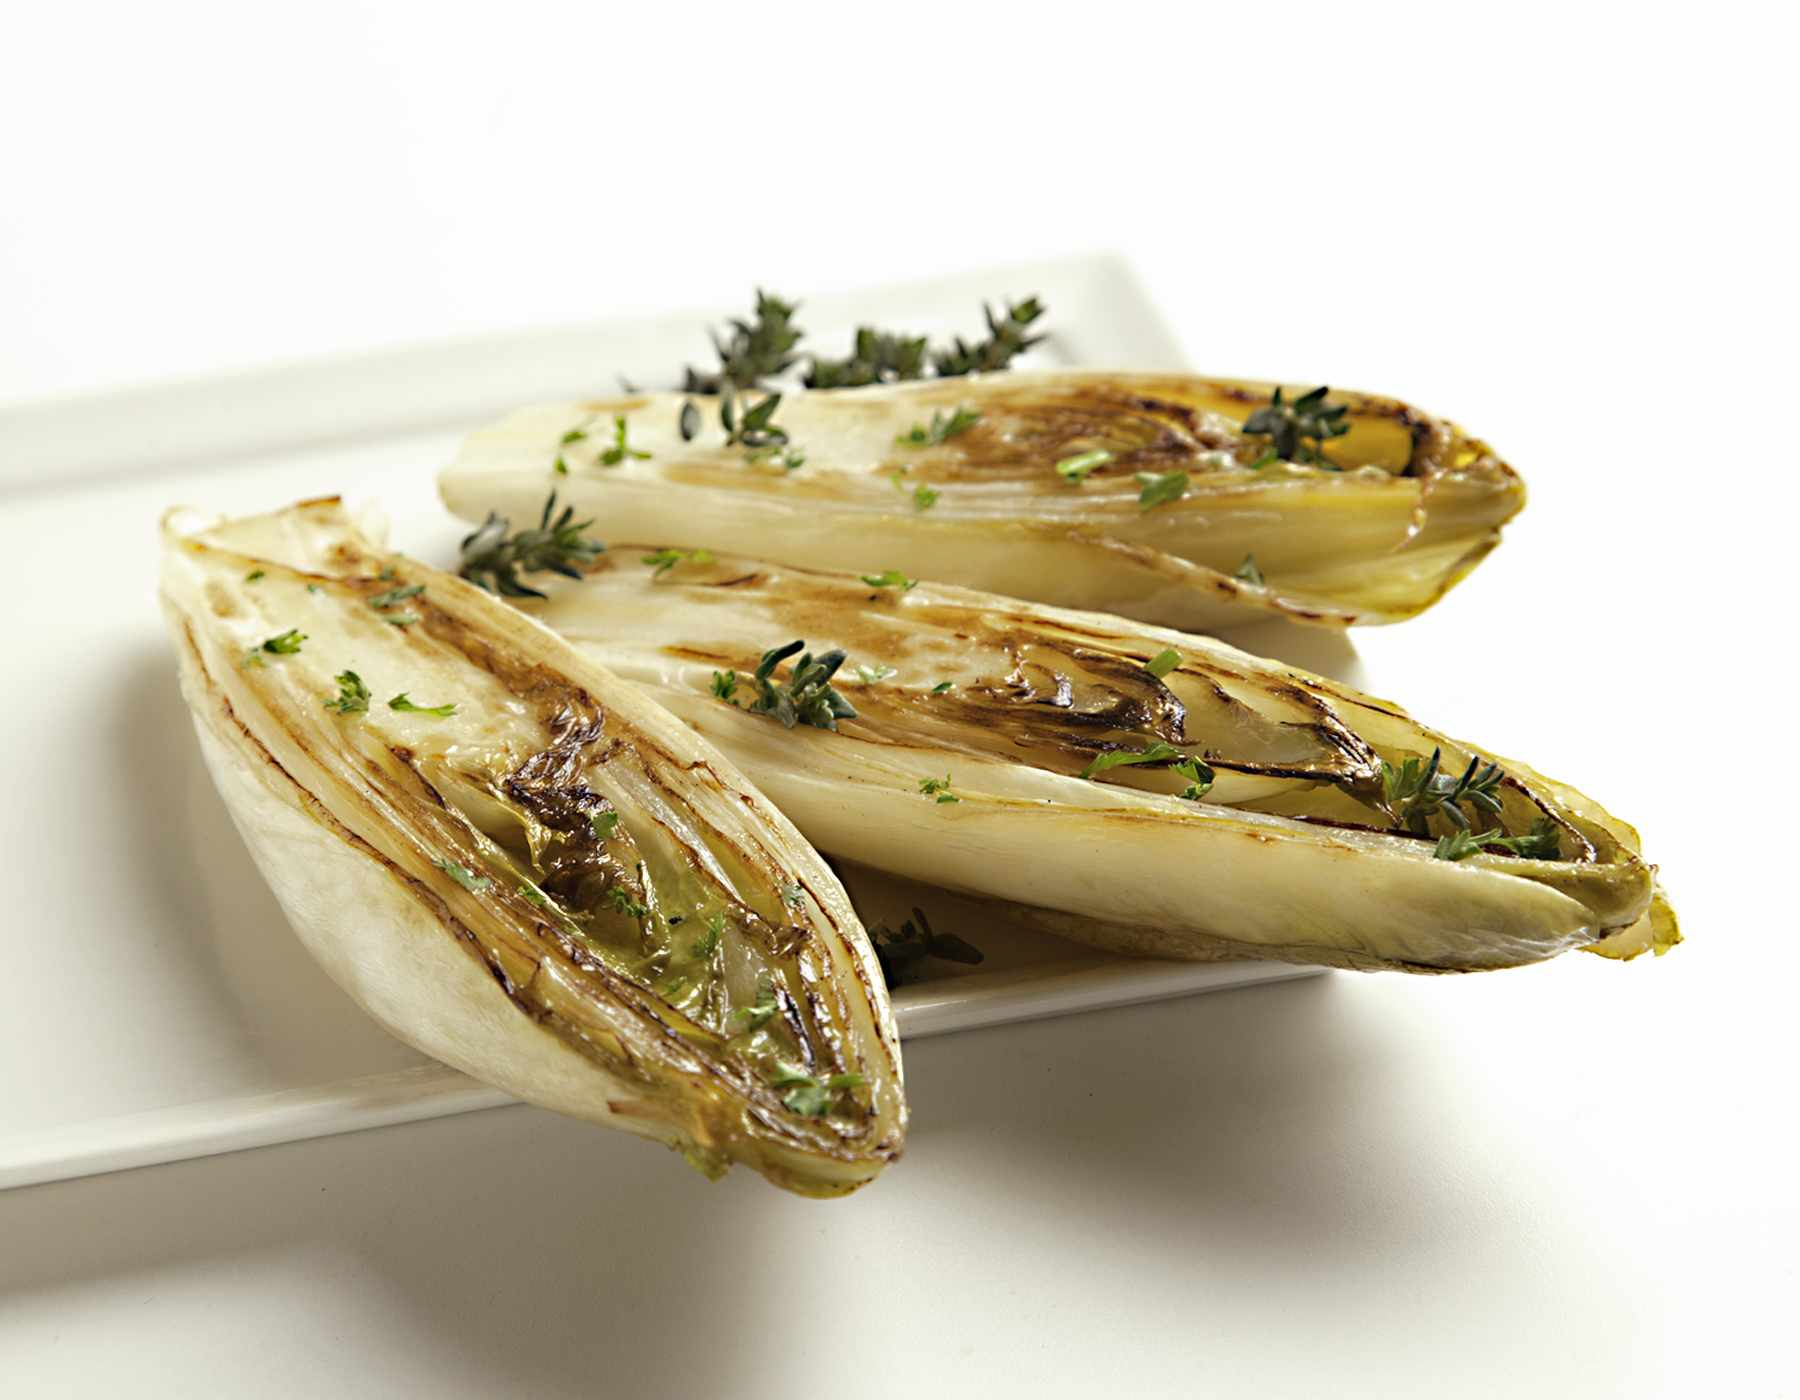 Grilled Endive with Balsamic Rosemary Marinade